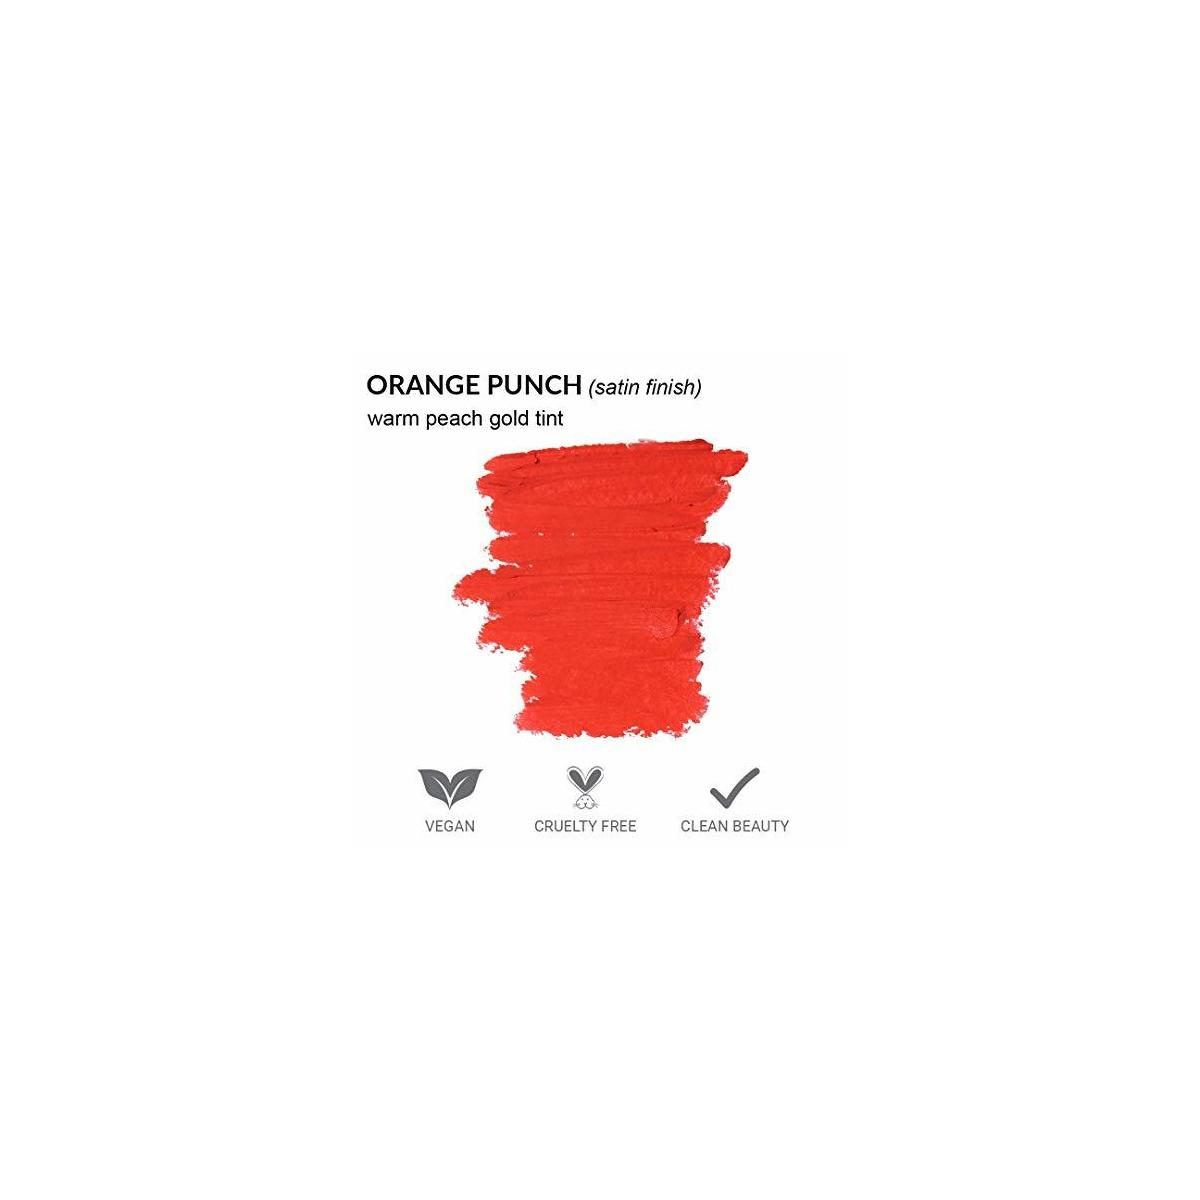 Super Moisture Lipstick by True + Luscious - Clean Formula, Smooth and Hydrating - Vegan and Cruelty Free Lipstick, Non Toxic and Lead Free Shade: Orange Punch - 0.12 oz